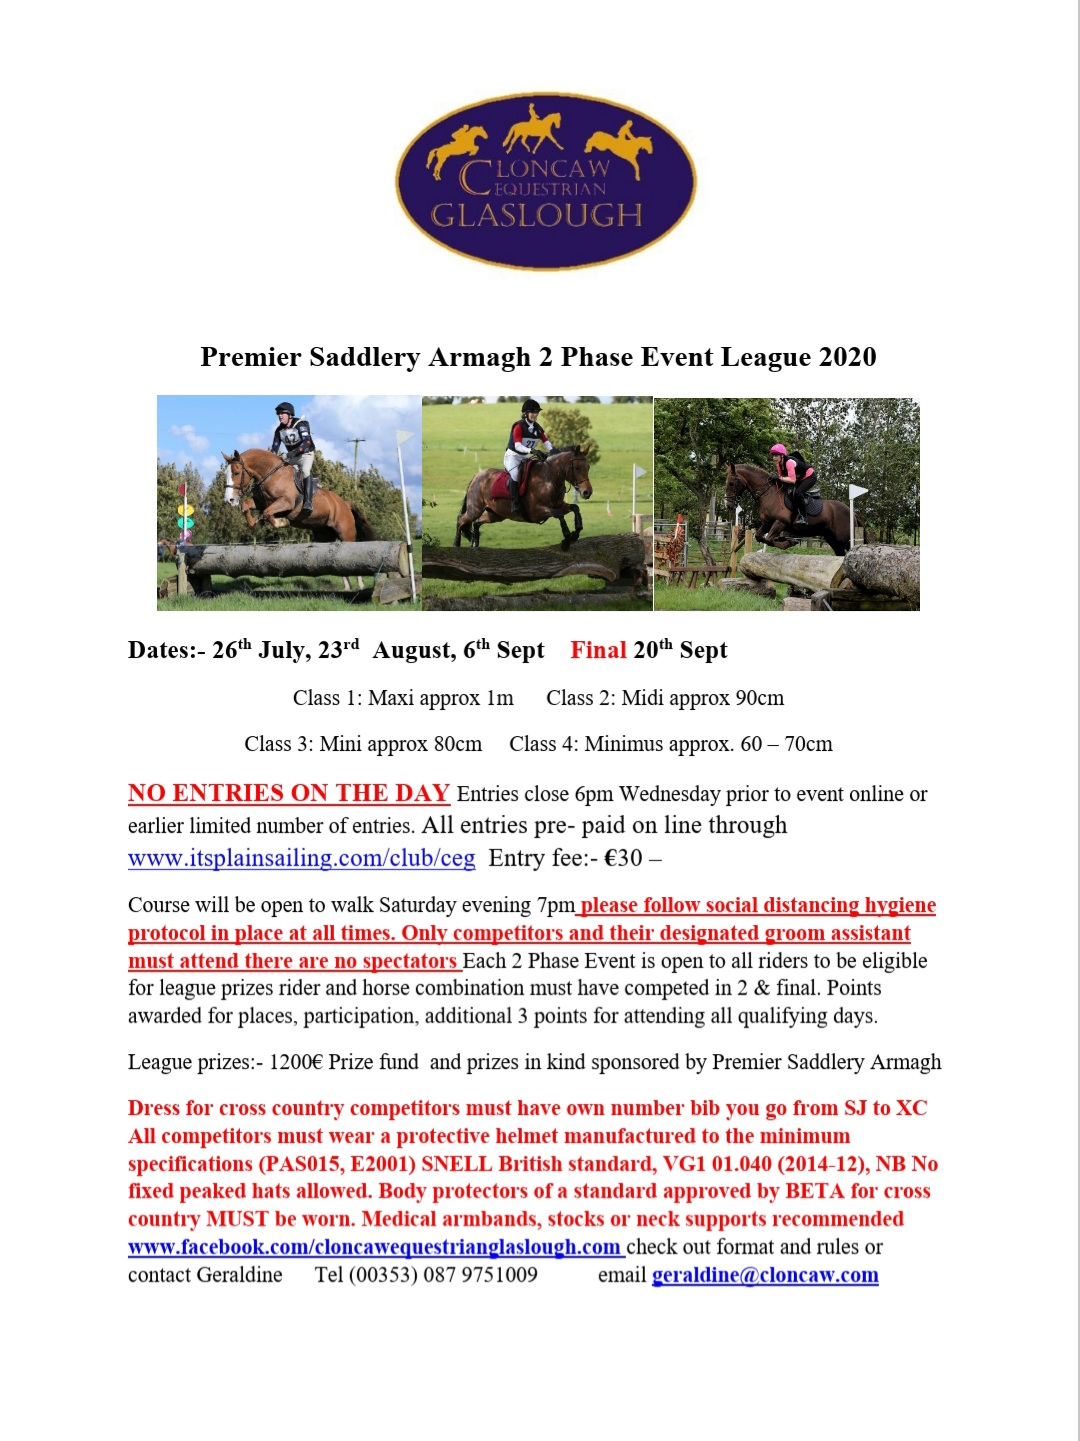 PREMIER SADDLERY 2 PHASE EVENT LEAGUE